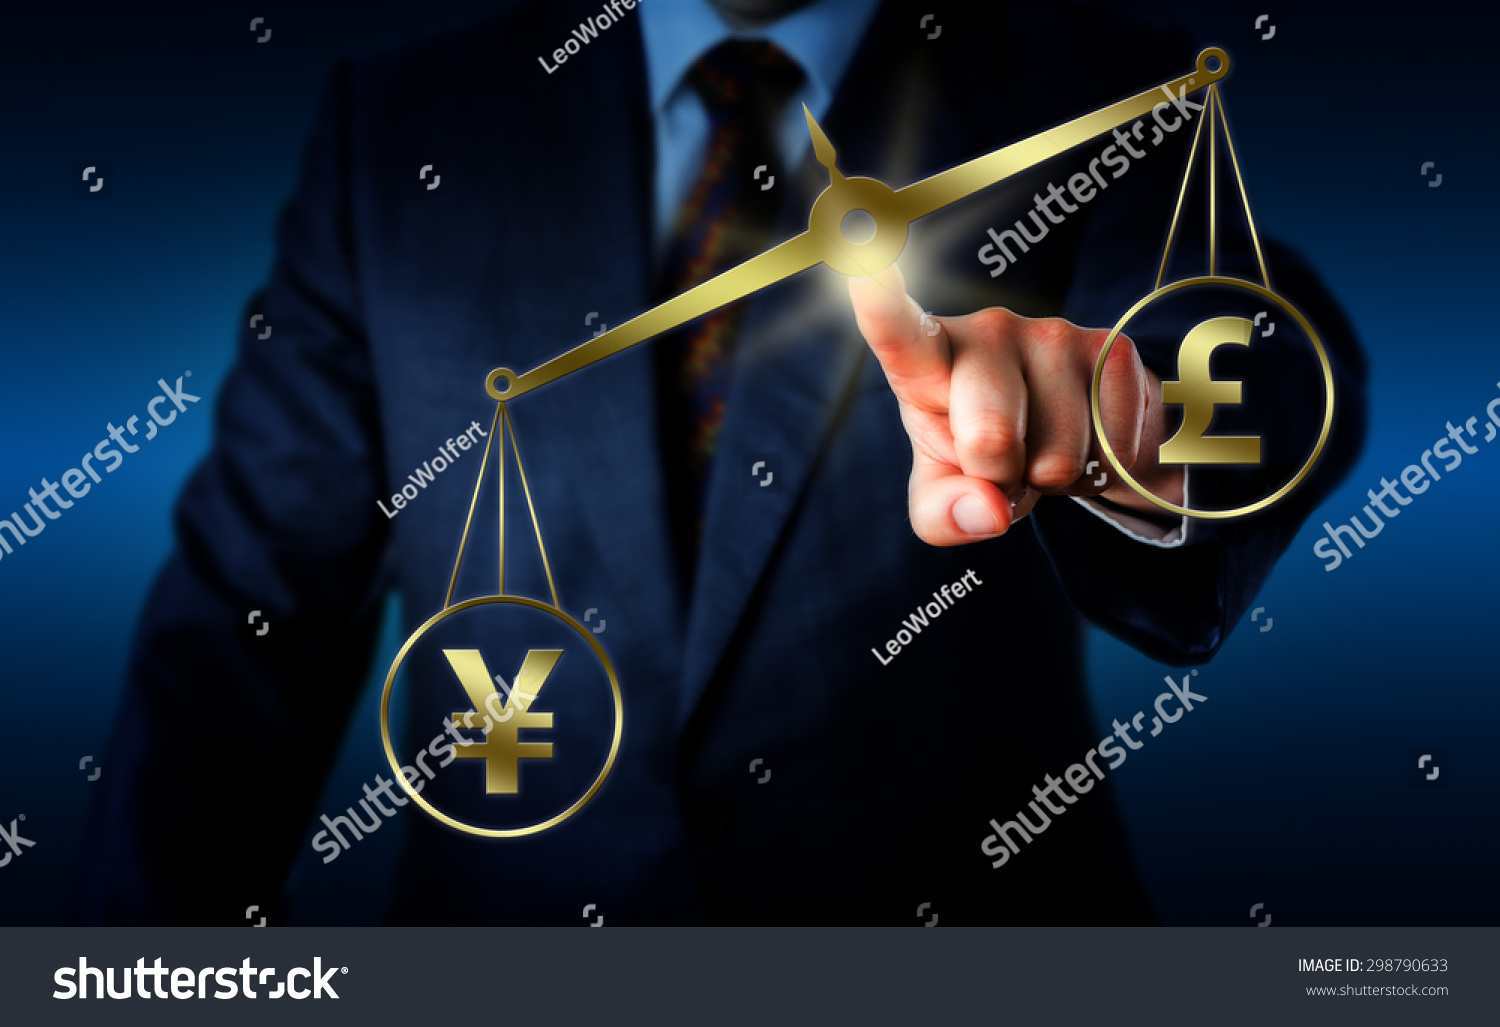 China yuan sign outweighing british pound stock illustration china yuan sign is outweighing the british pound sterling symbol on a golden balance torso biocorpaavc Gallery